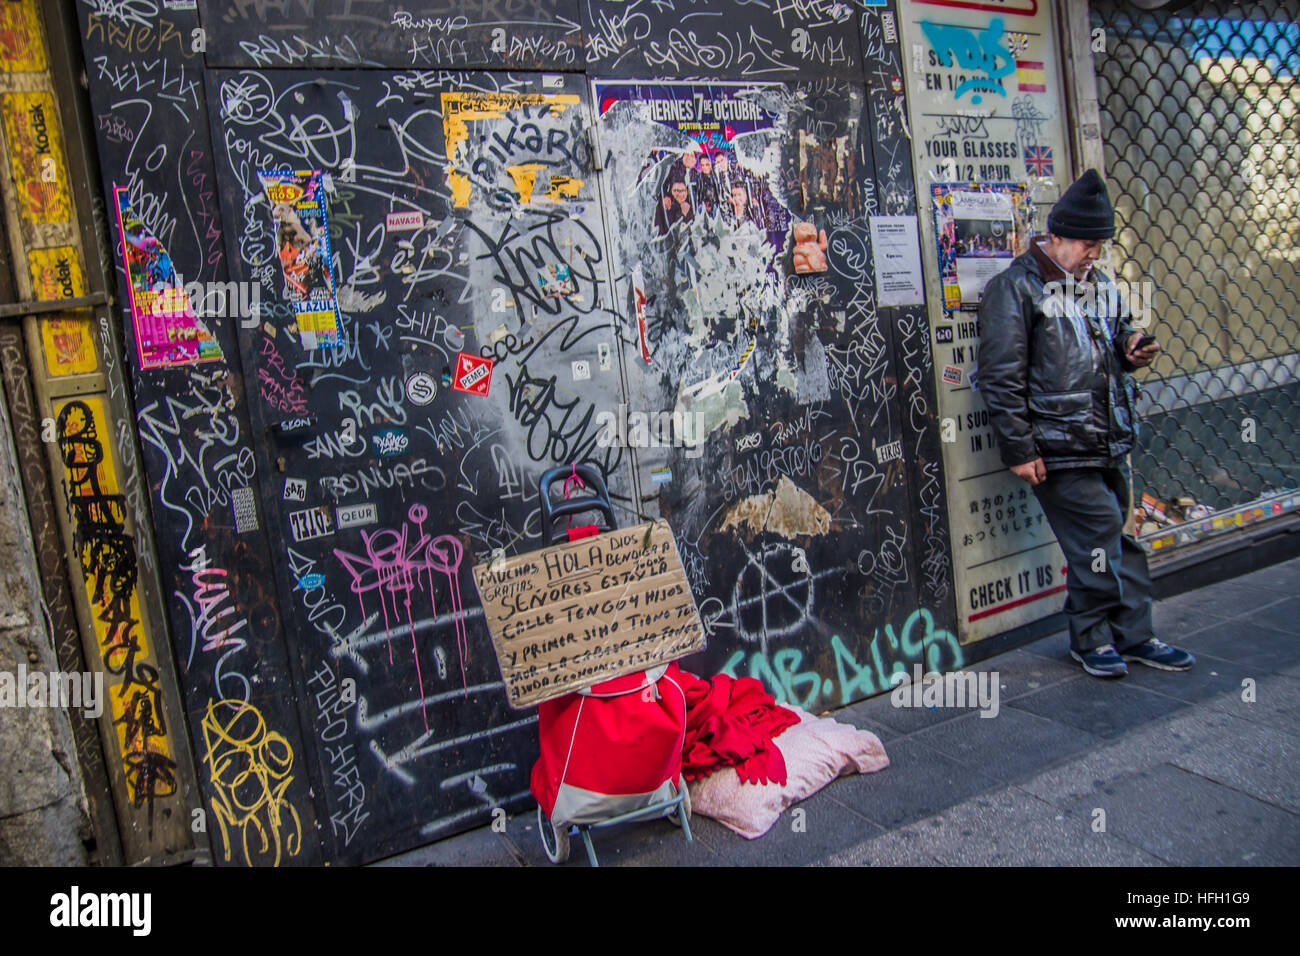 Madrid, Spain. 30th Dec, 2016. Beggars in the center of Madrid pay around 45 euros per day to the mafia to have - Stock Image